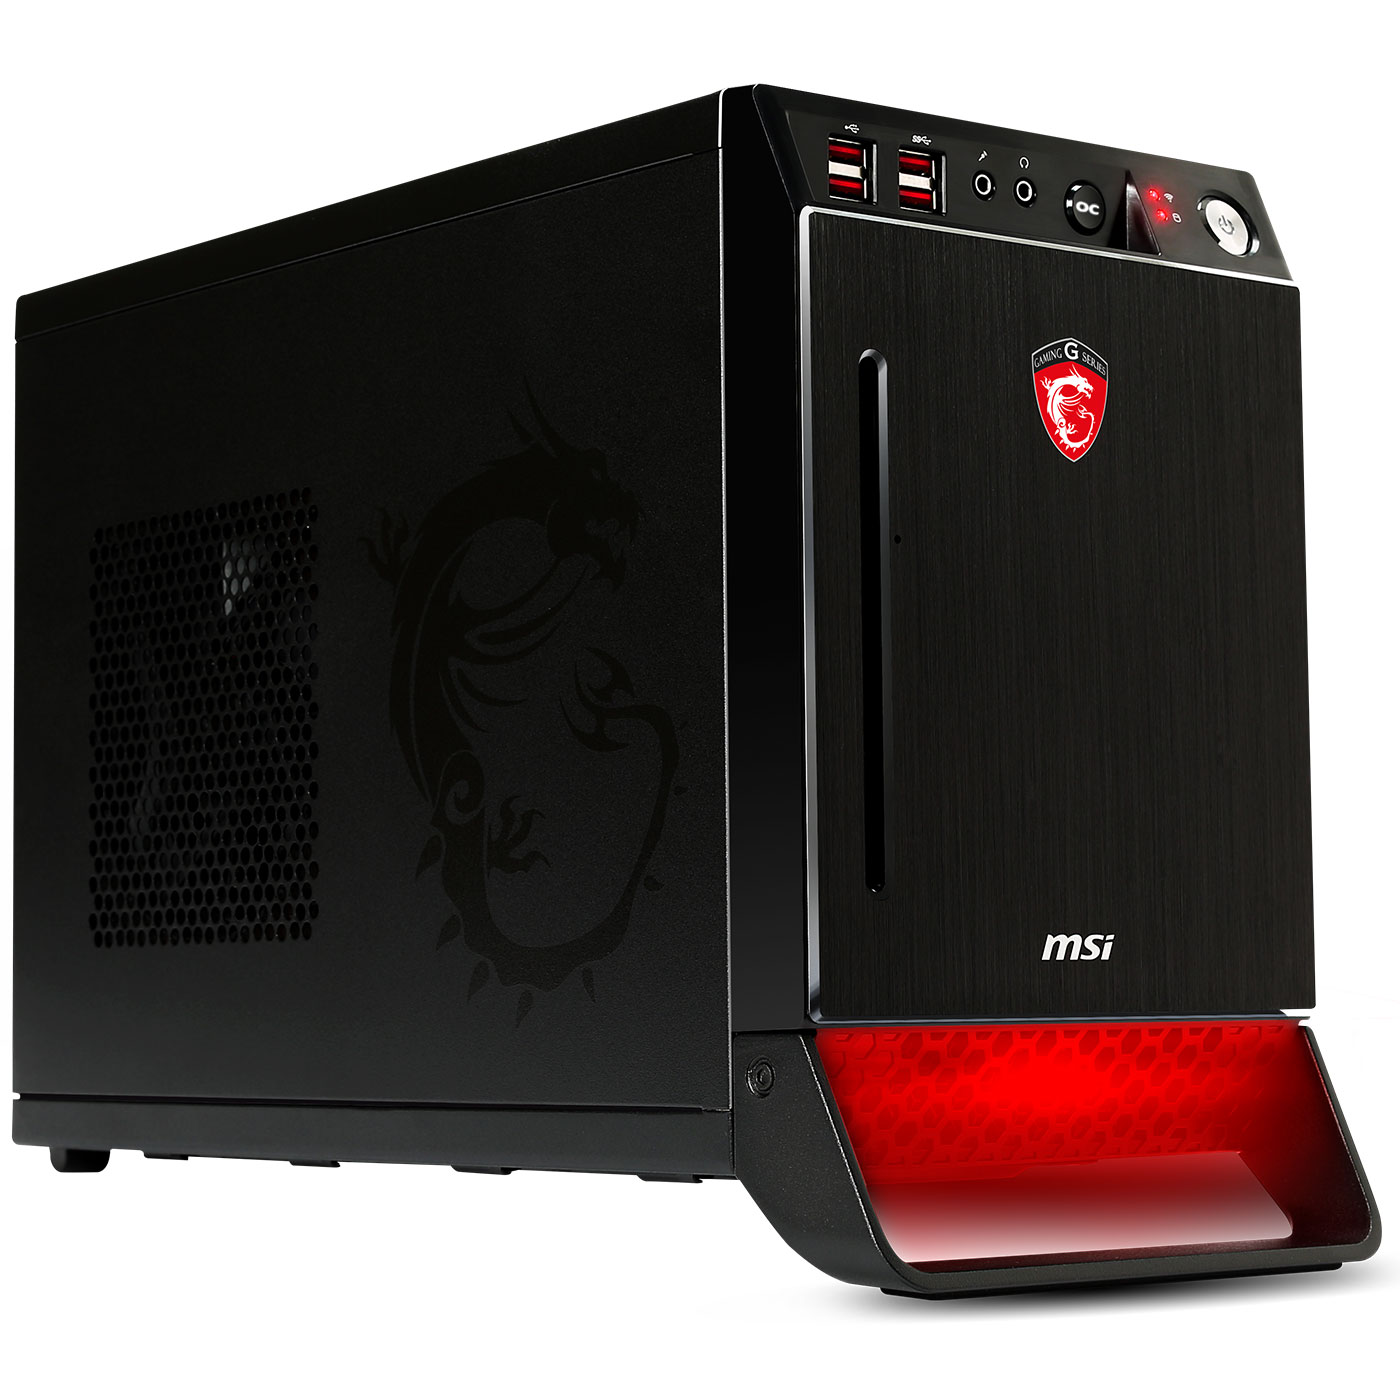 msi nightblade z97 014beu bsx barebone pc msi sur ldlc. Black Bedroom Furniture Sets. Home Design Ideas